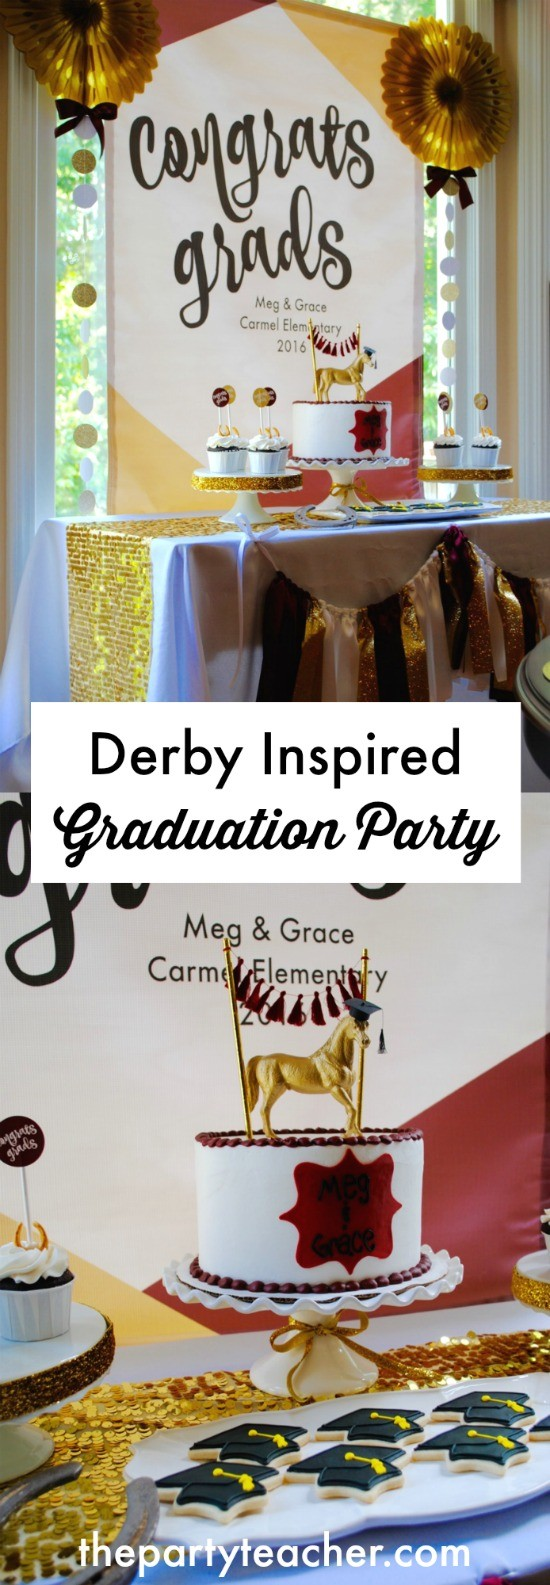 Derby Inspired Graduation Party by The Party Teacher